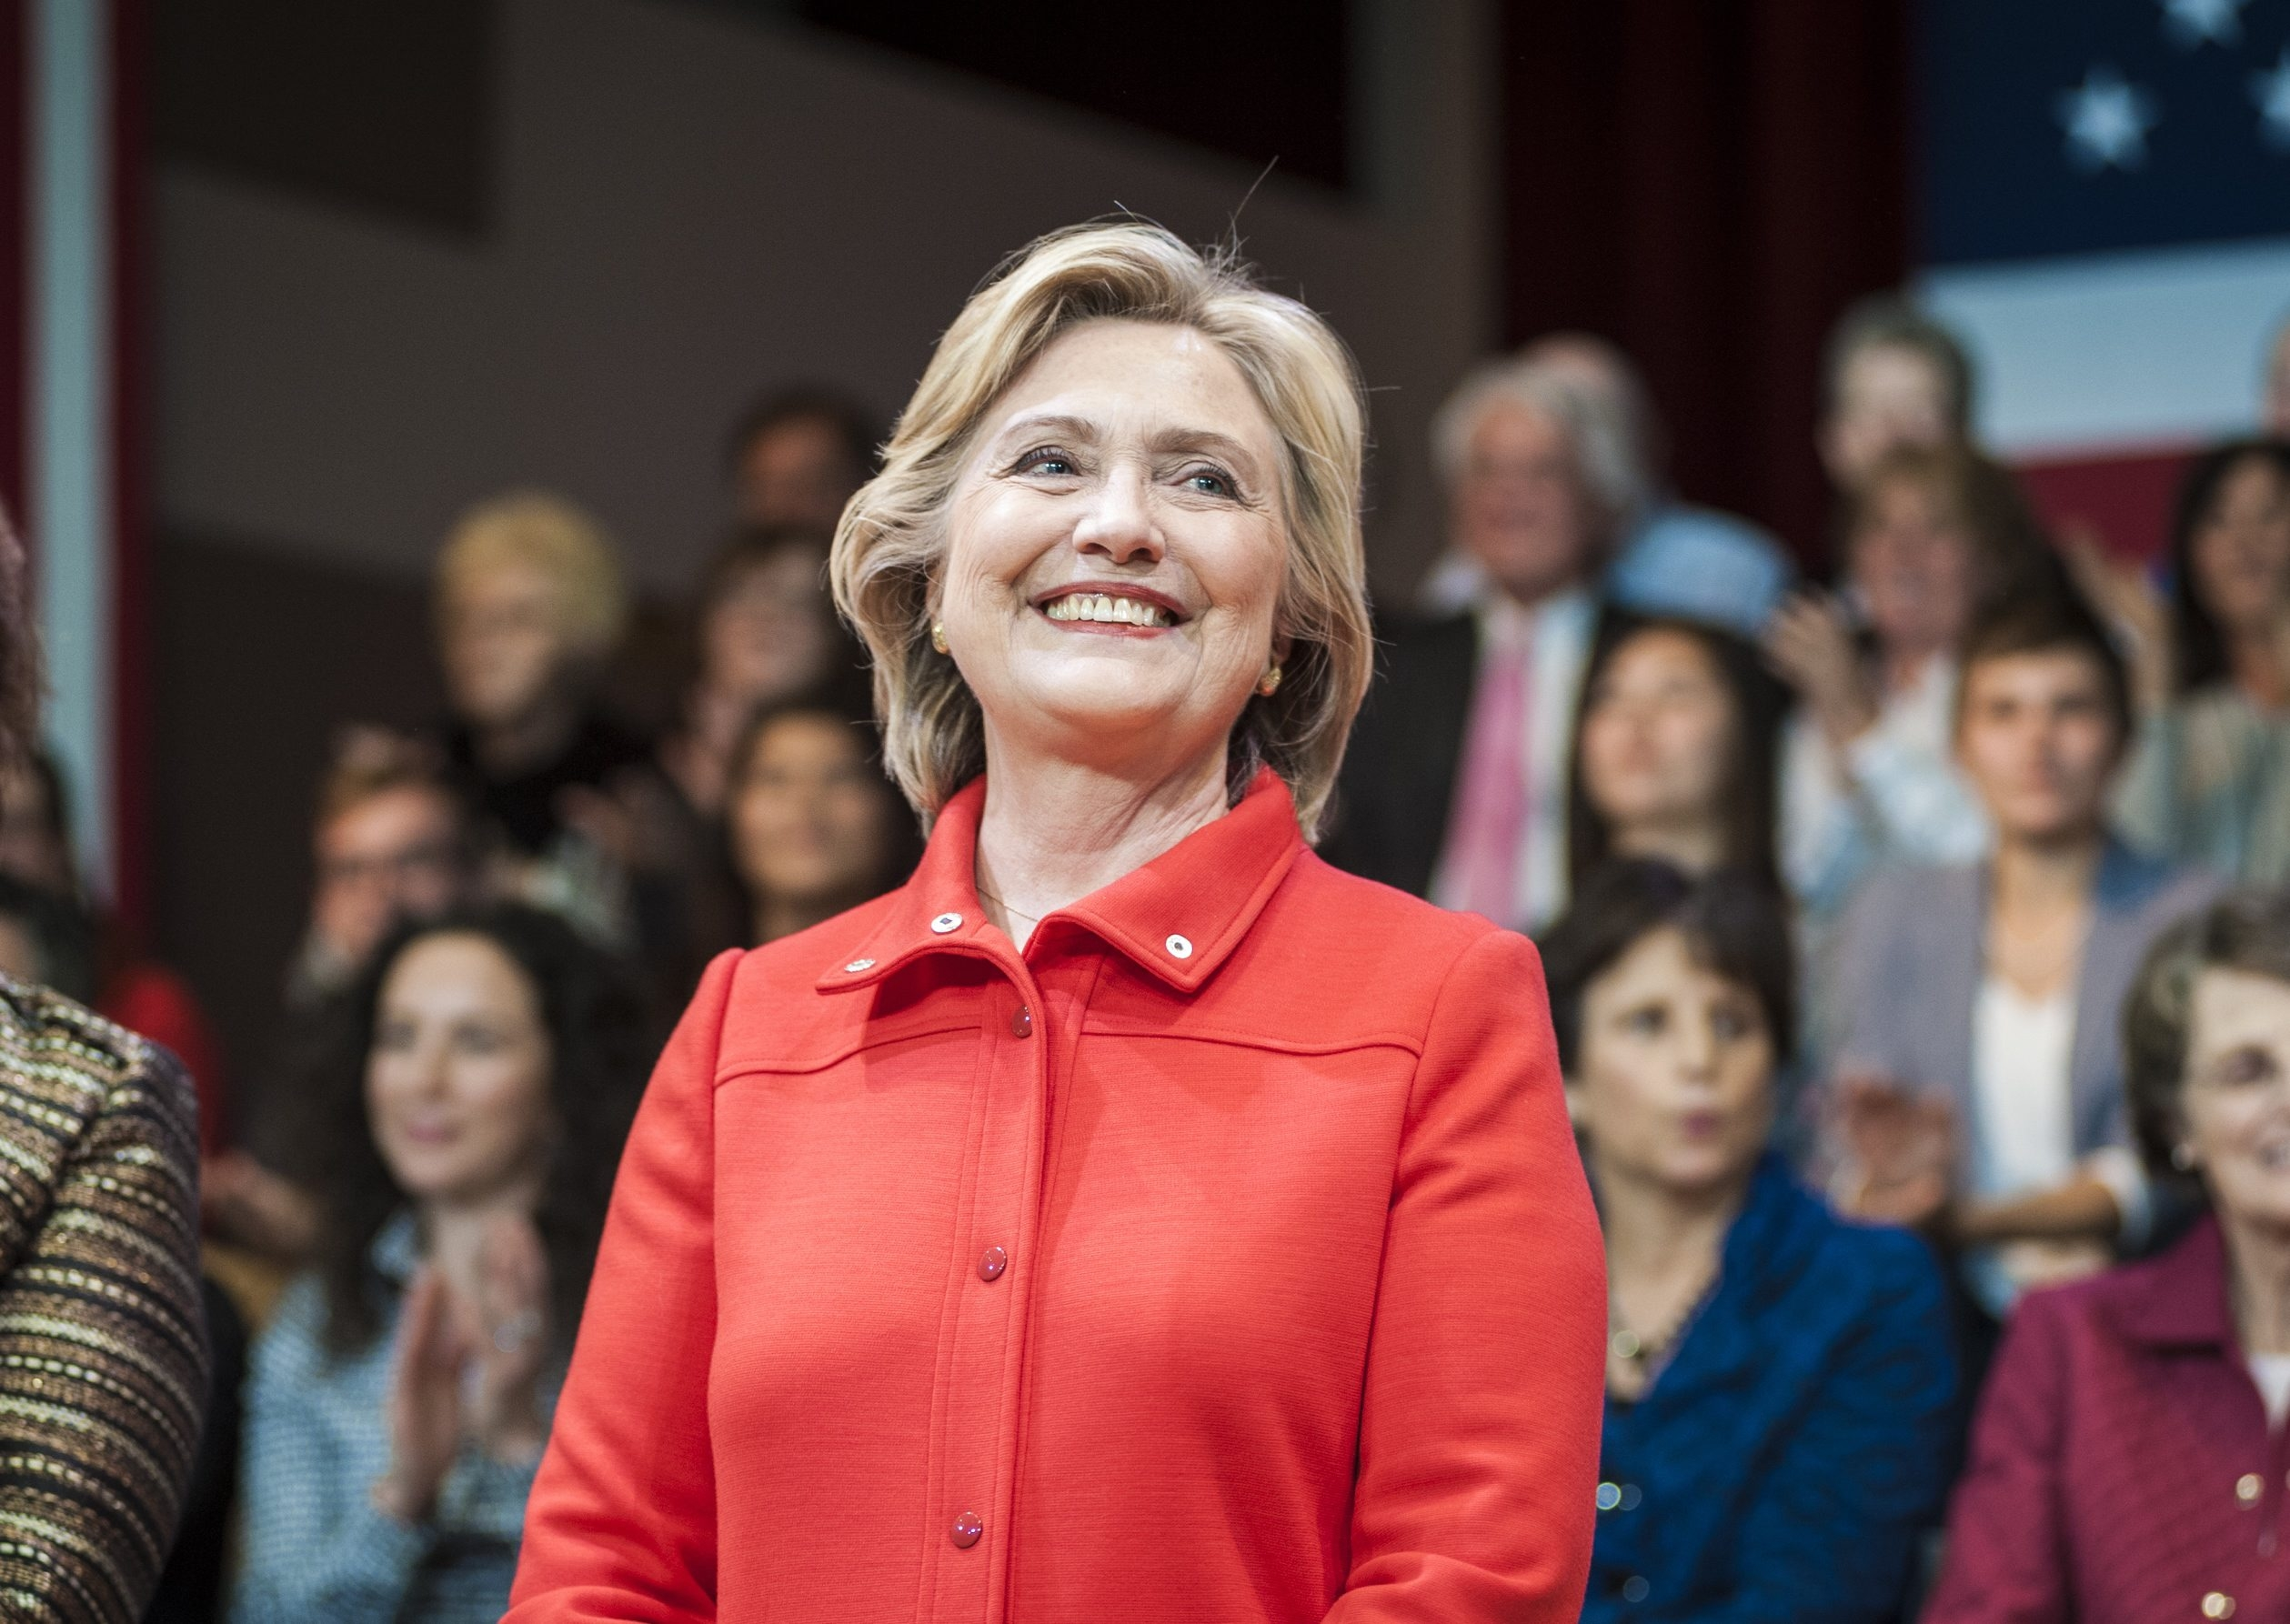 Democratic presidential hopeful Hillary Rodham Clinton campaigns at Keene State College in Keene, N.H., on Oct. 16, 2015. (New York Times photo)